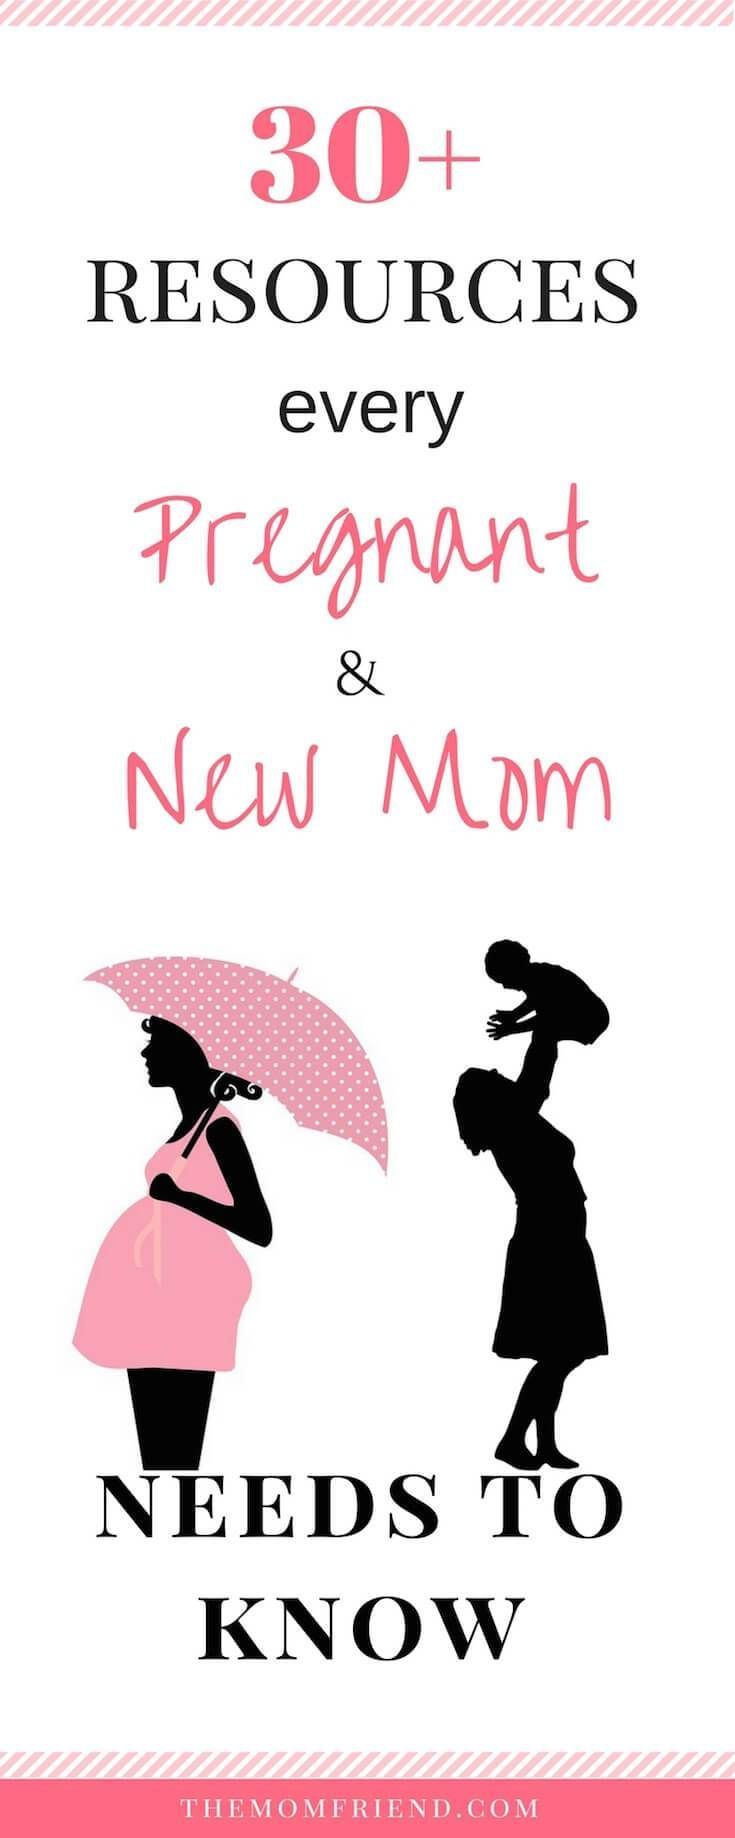 The best websites, blogs, FB pages & more for pregnancy & new moms. Get weekly pregnancy updates and create a baby registry, read baby gear guides, and get inspired by blogs about motherhood. pregnancy, new mom tips, motherhood, first time mom resources, baby gear, baby registry | http://Themomfriend.com